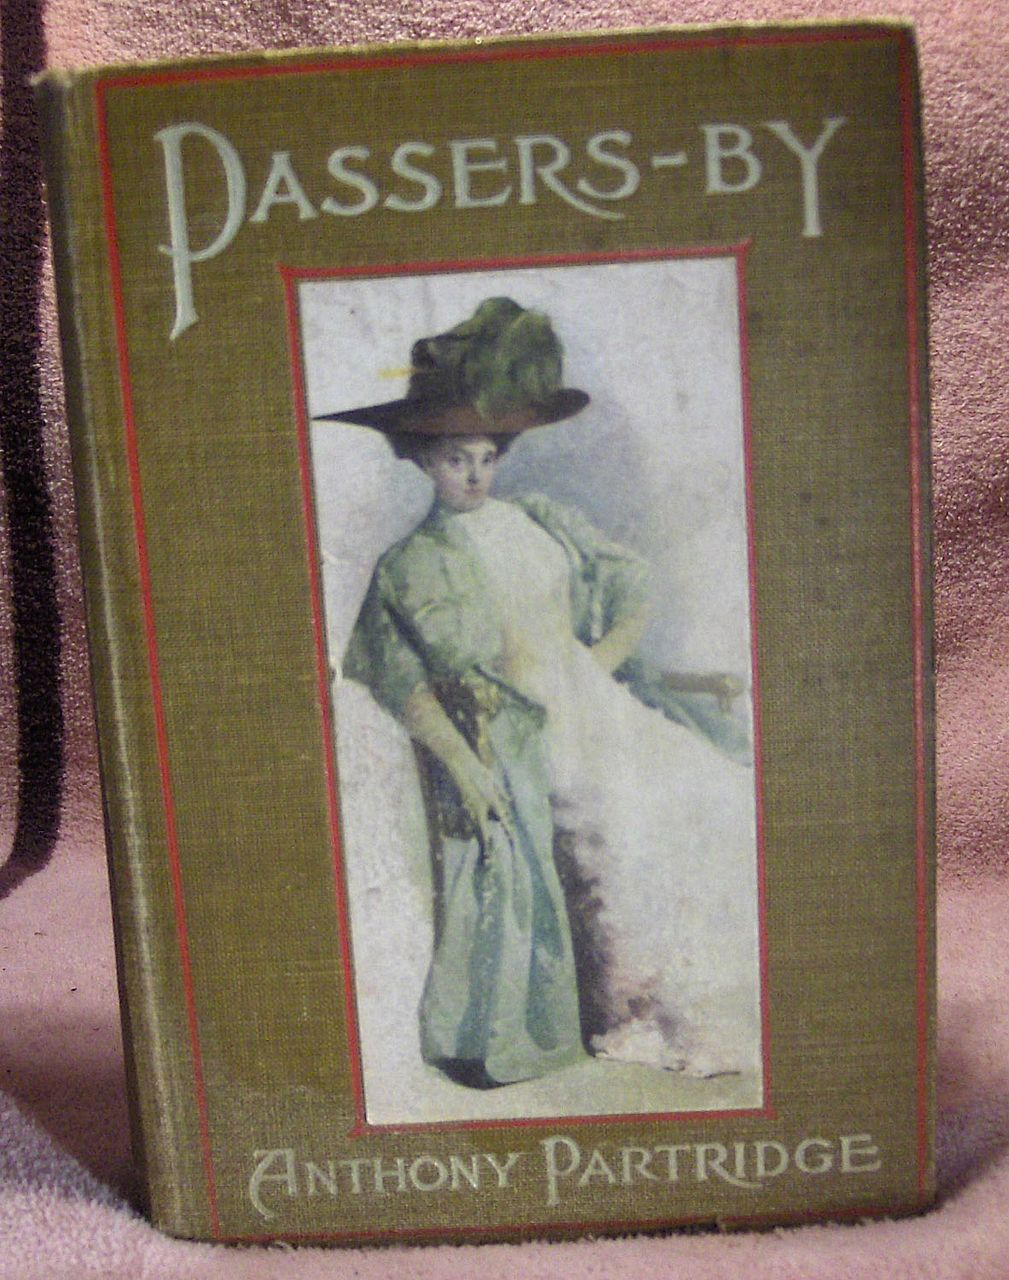 Book – Passers-By by Anthony Partridge